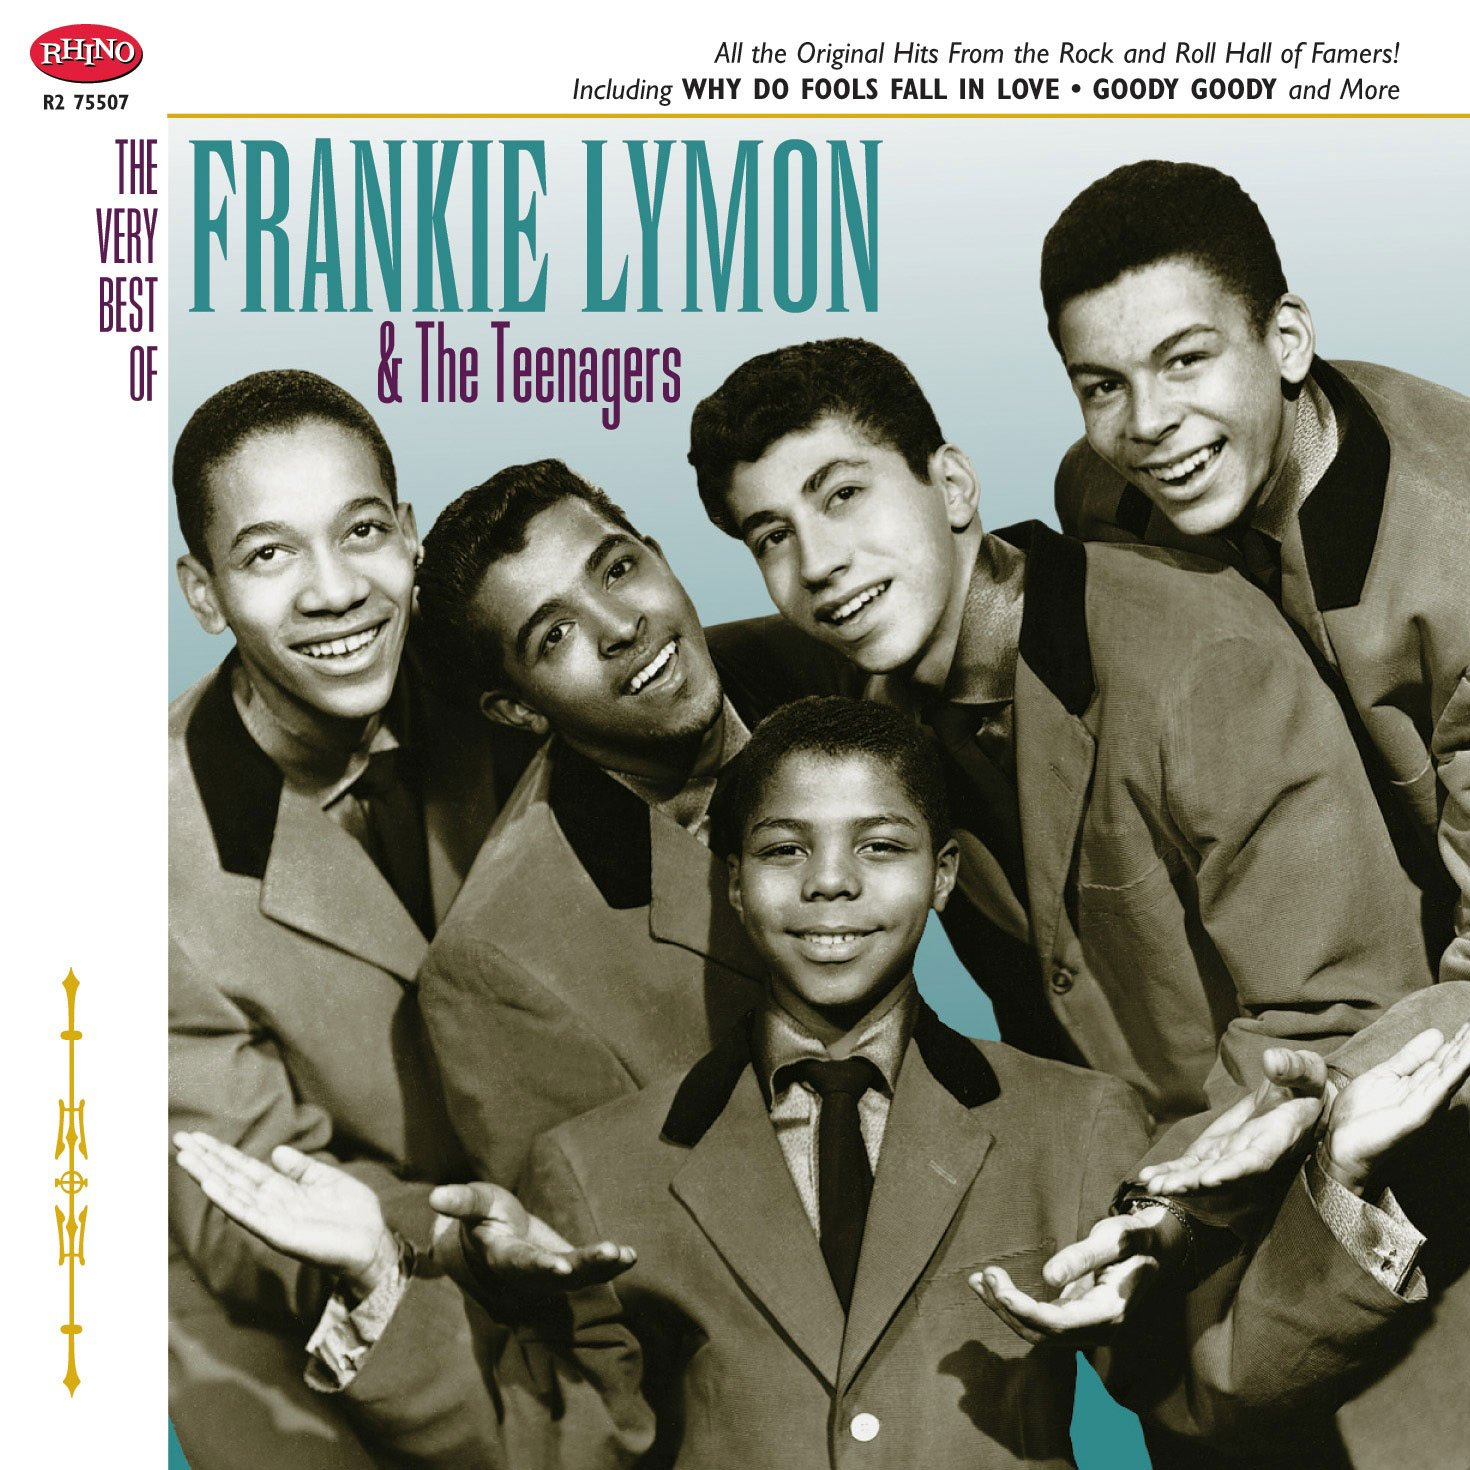 Frankie Lymon and The Teenagers - The Very Best Of Frankie Lymon & The Teenagers - Amazon.com Music